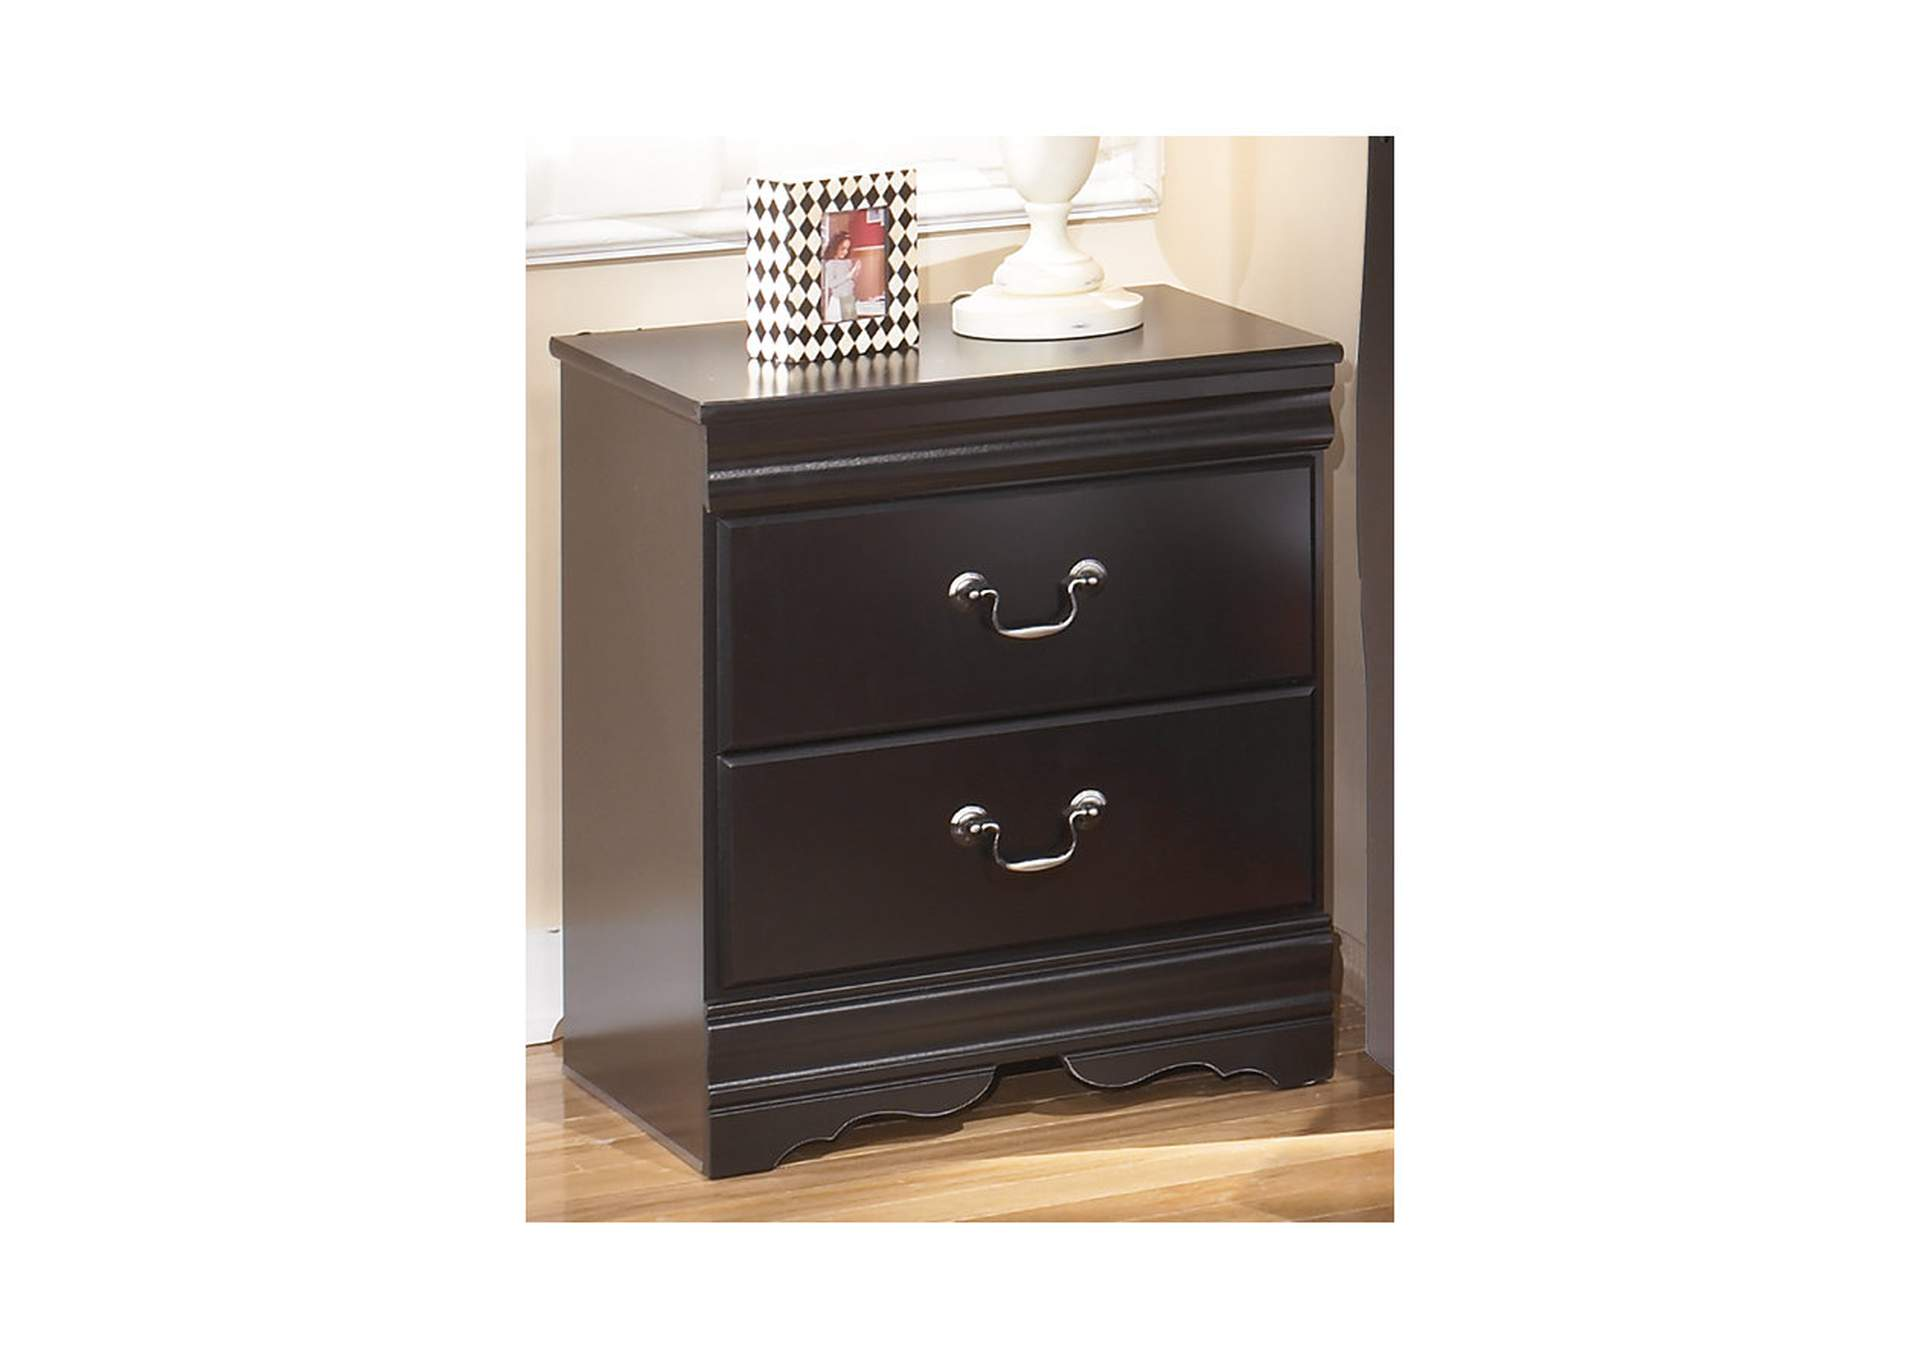 Huey Vineyard Nightstand,Signature Design By Ashley